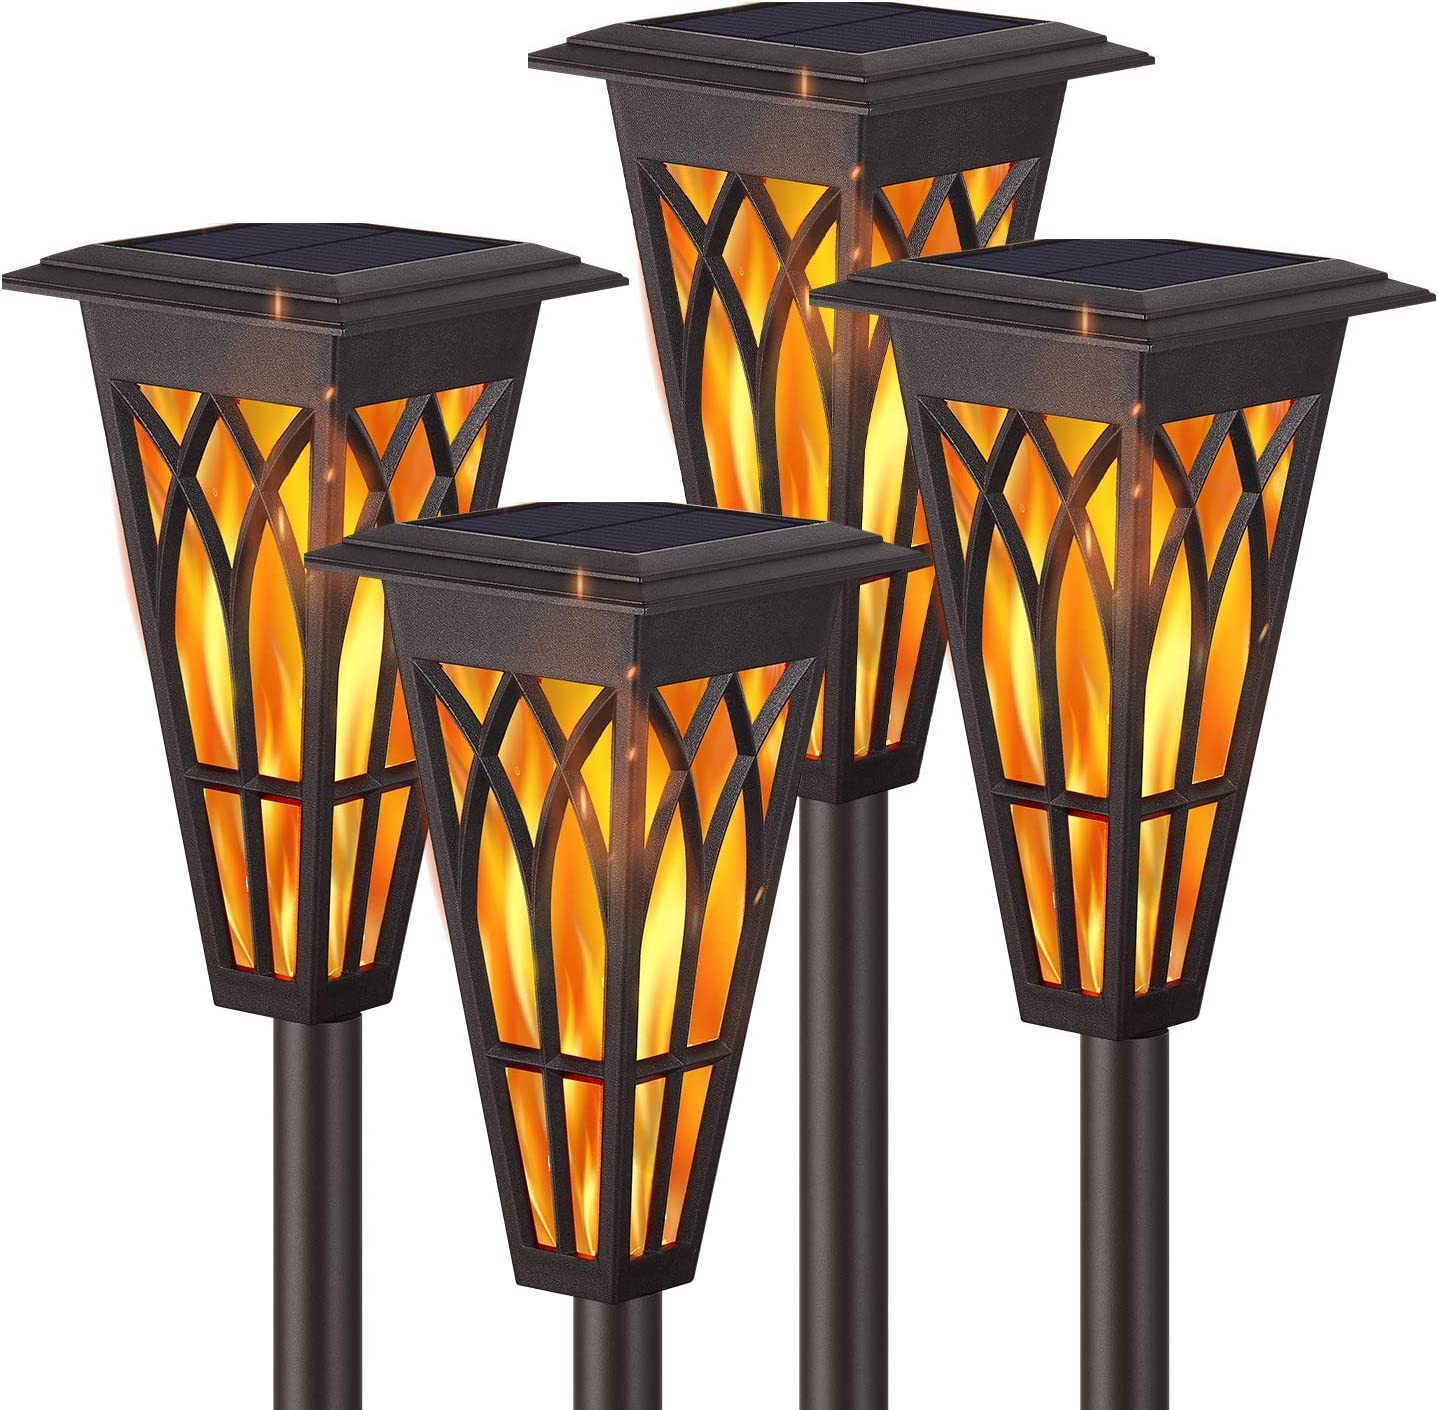 Solar Torch Lights – Solar Flame Torch Lights Outdoor 4 Pack 2 Modes Always-On/Flickering Flame Matte Lampshade Auto On/Off Pathway Lights Solar Powered Stainless Steel IP65 Waterproof Path/Beach/Yard